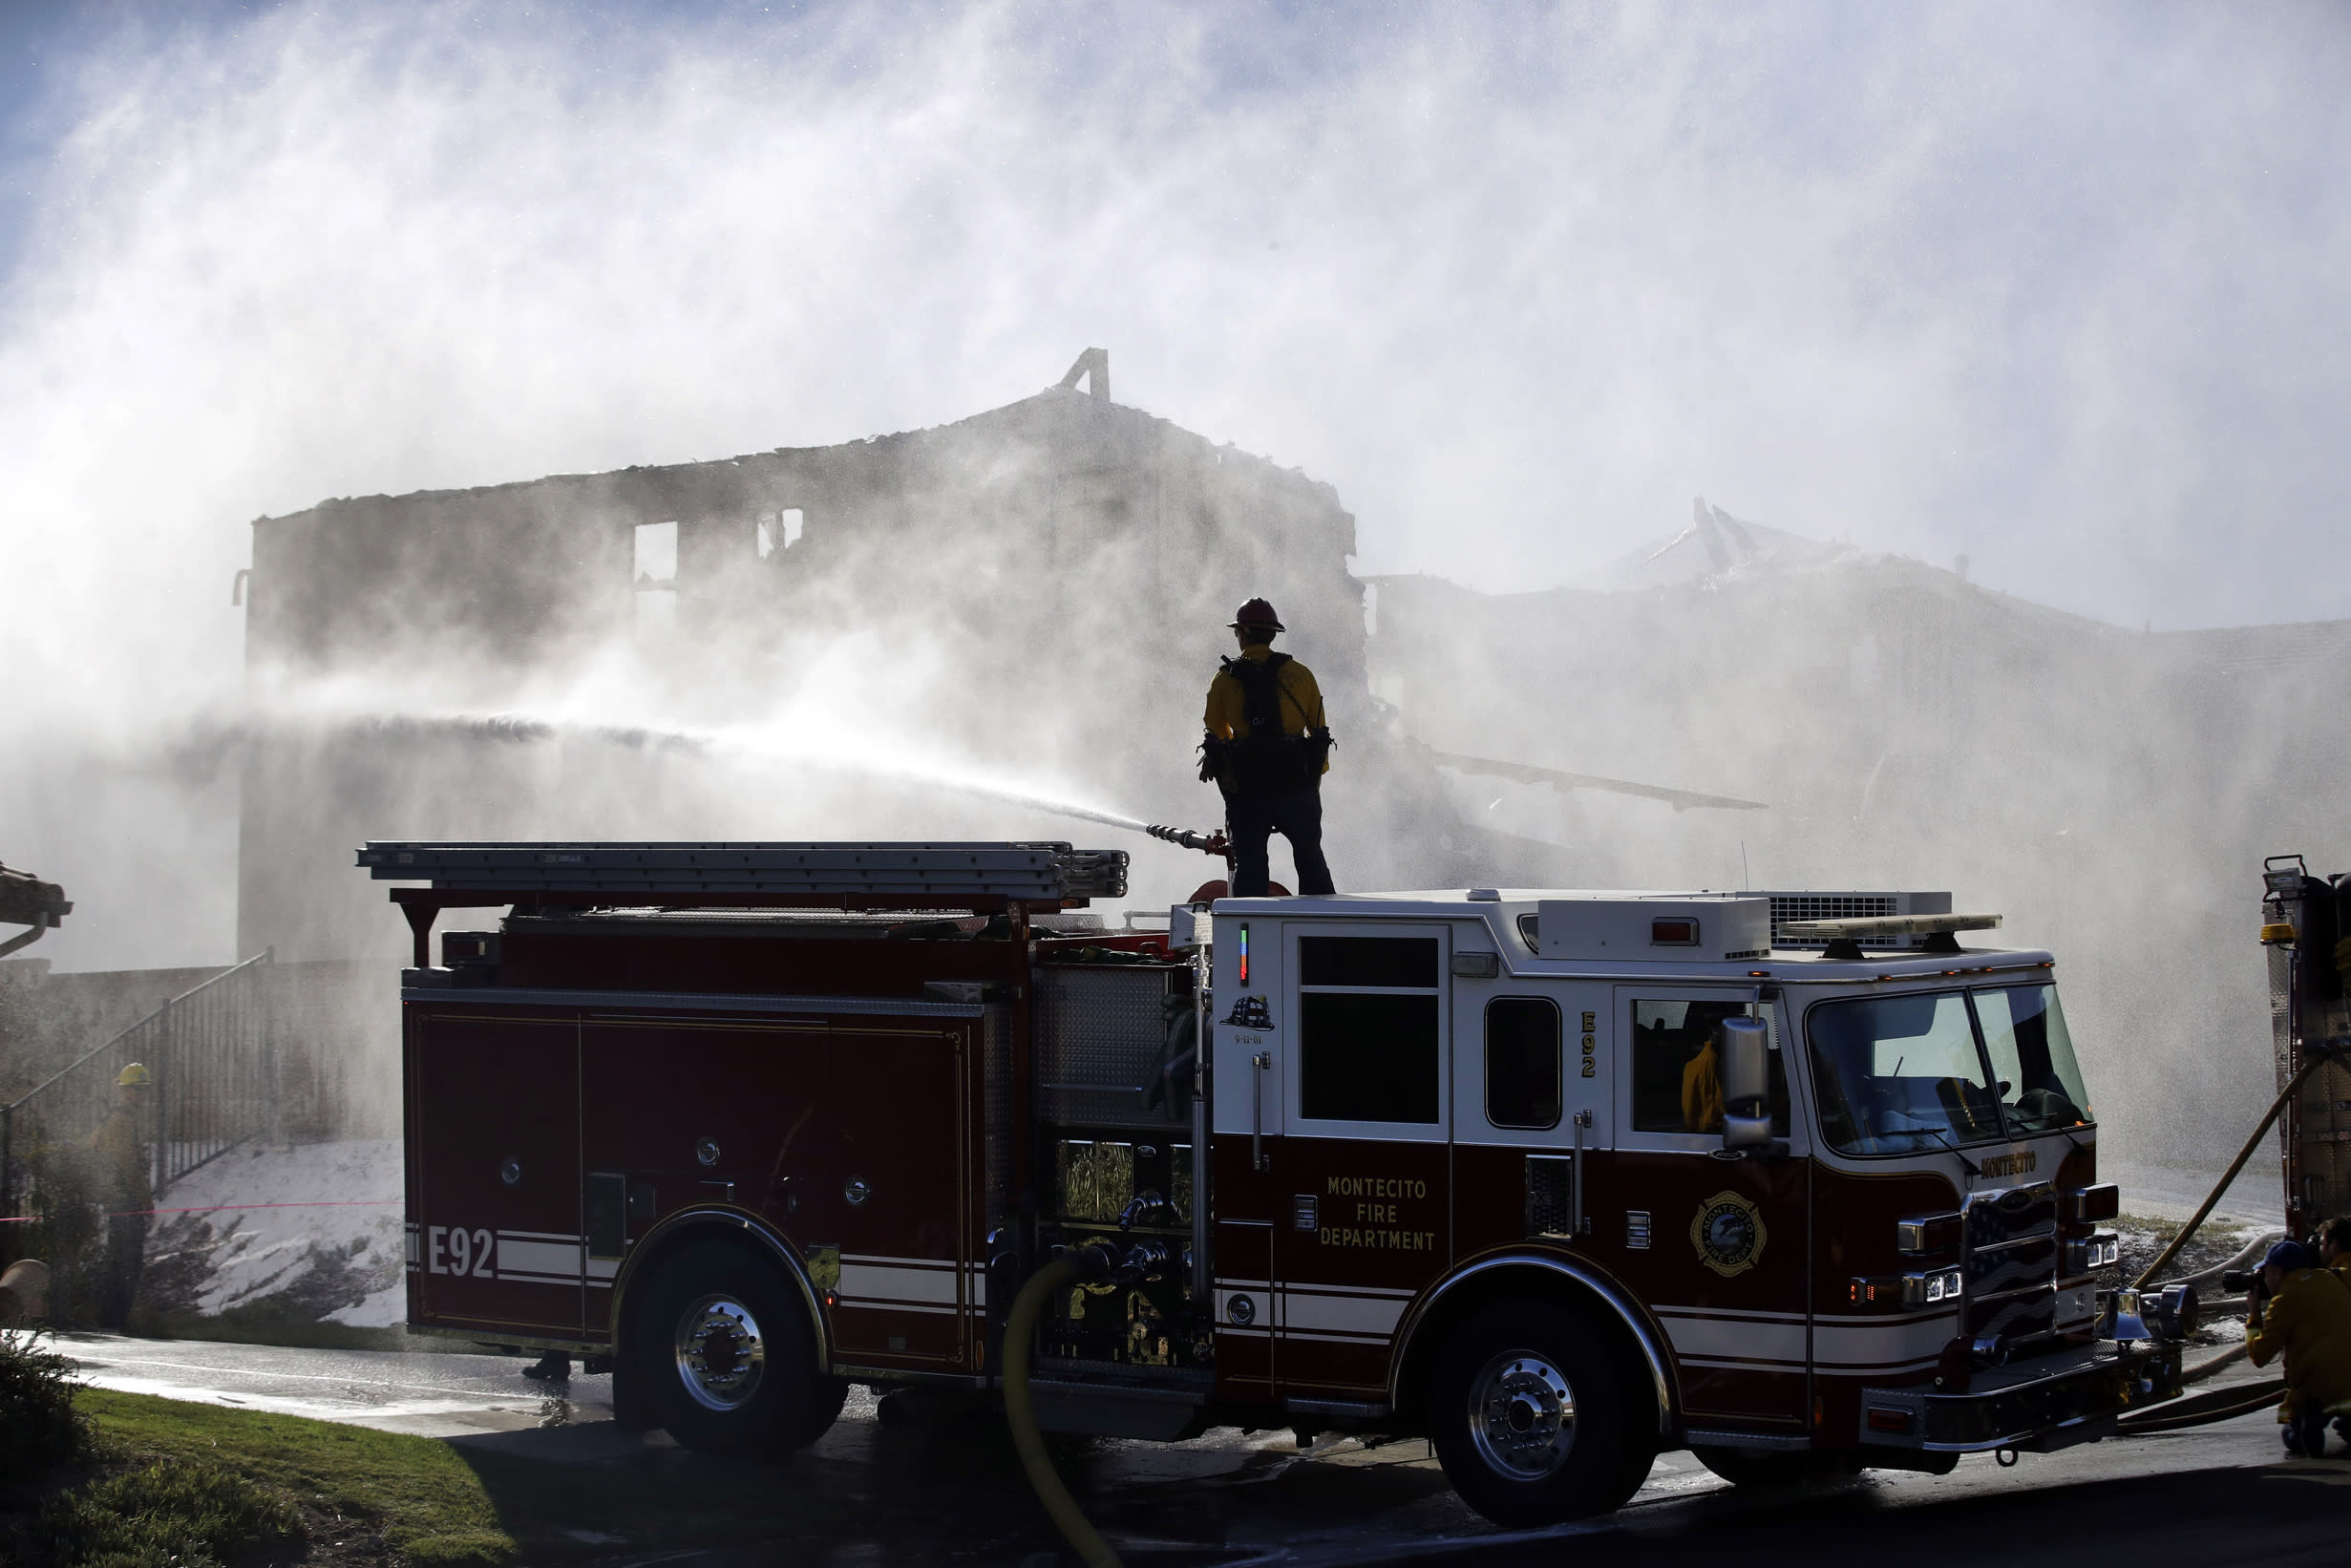 A firefighter tries to put out a residence fire caused by a wildfire from atop a fire truck Friday, Oct. 25, 2019, in Santa Clarita, Calif. An estimated 50,000 people were under evacuation orders in the Santa Clarita area north of Los Angeles as hot, dry Santa Ana winds howling at up to 50 mph (80 kph) drove the flames into neighborhoods(AP Photo/Marcio Jose Sanchez)